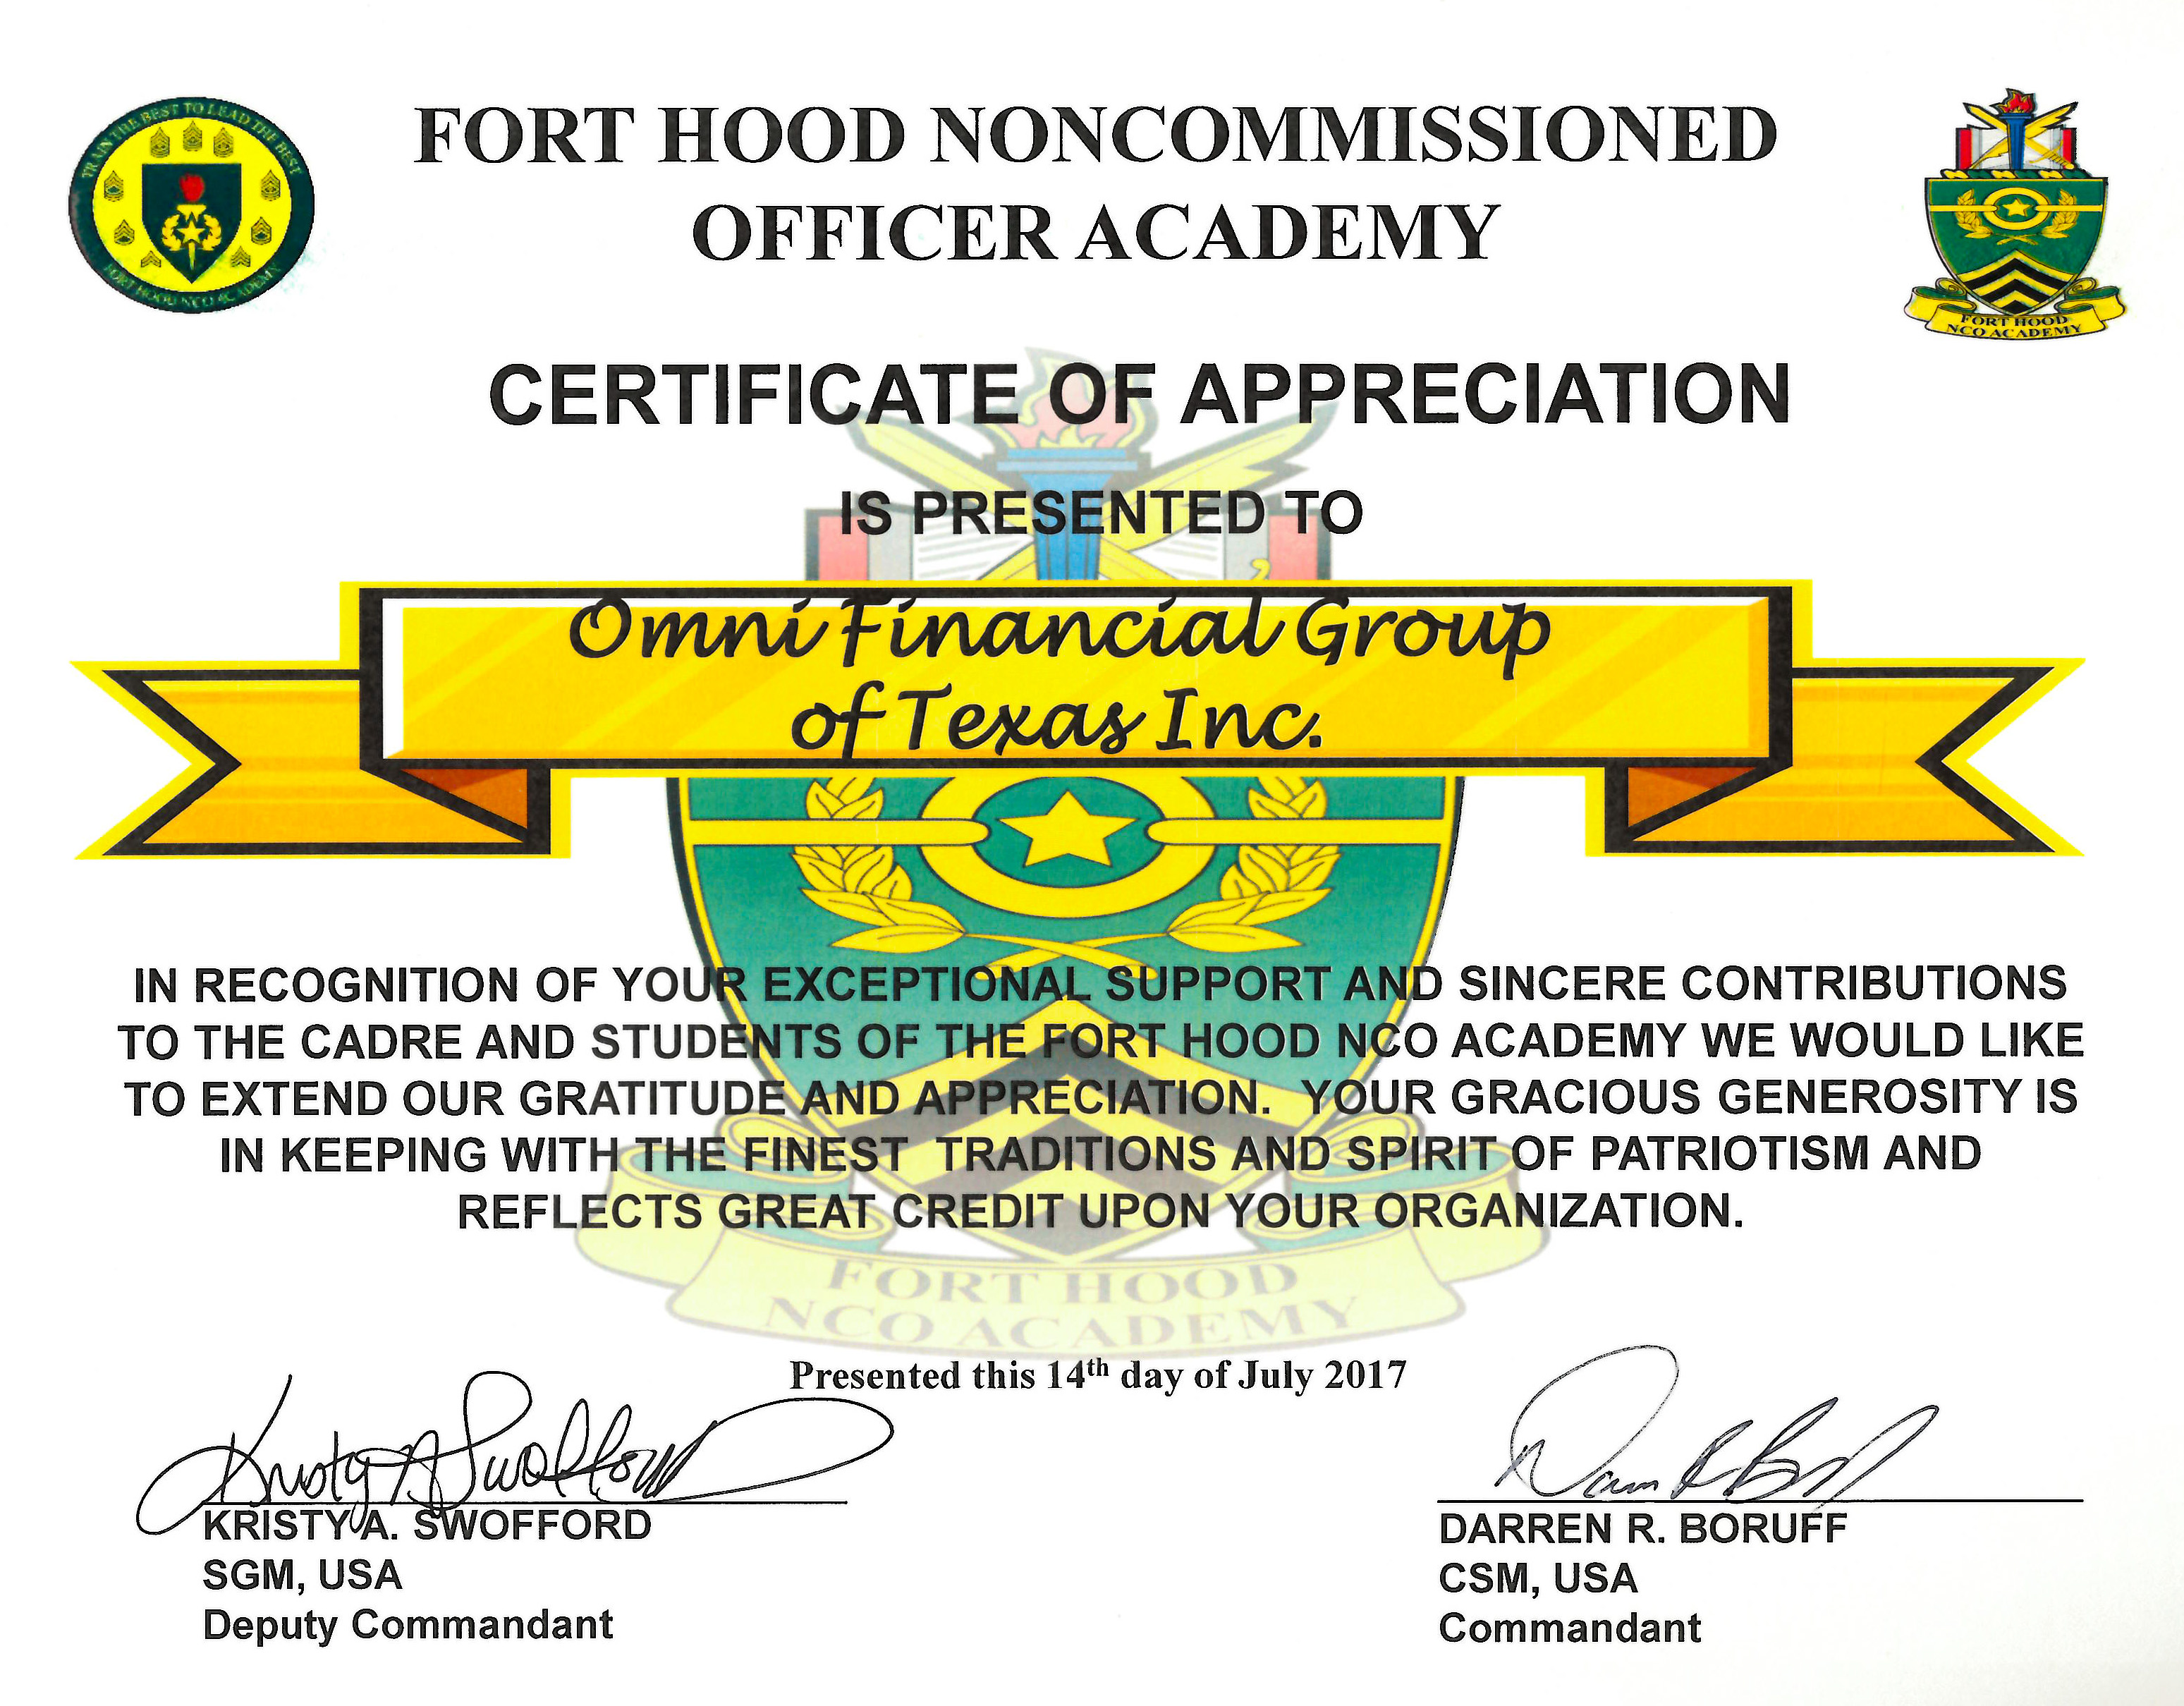 Fort Hood Noncommissioned Officer Academy Certificate of Appreciation July 2017